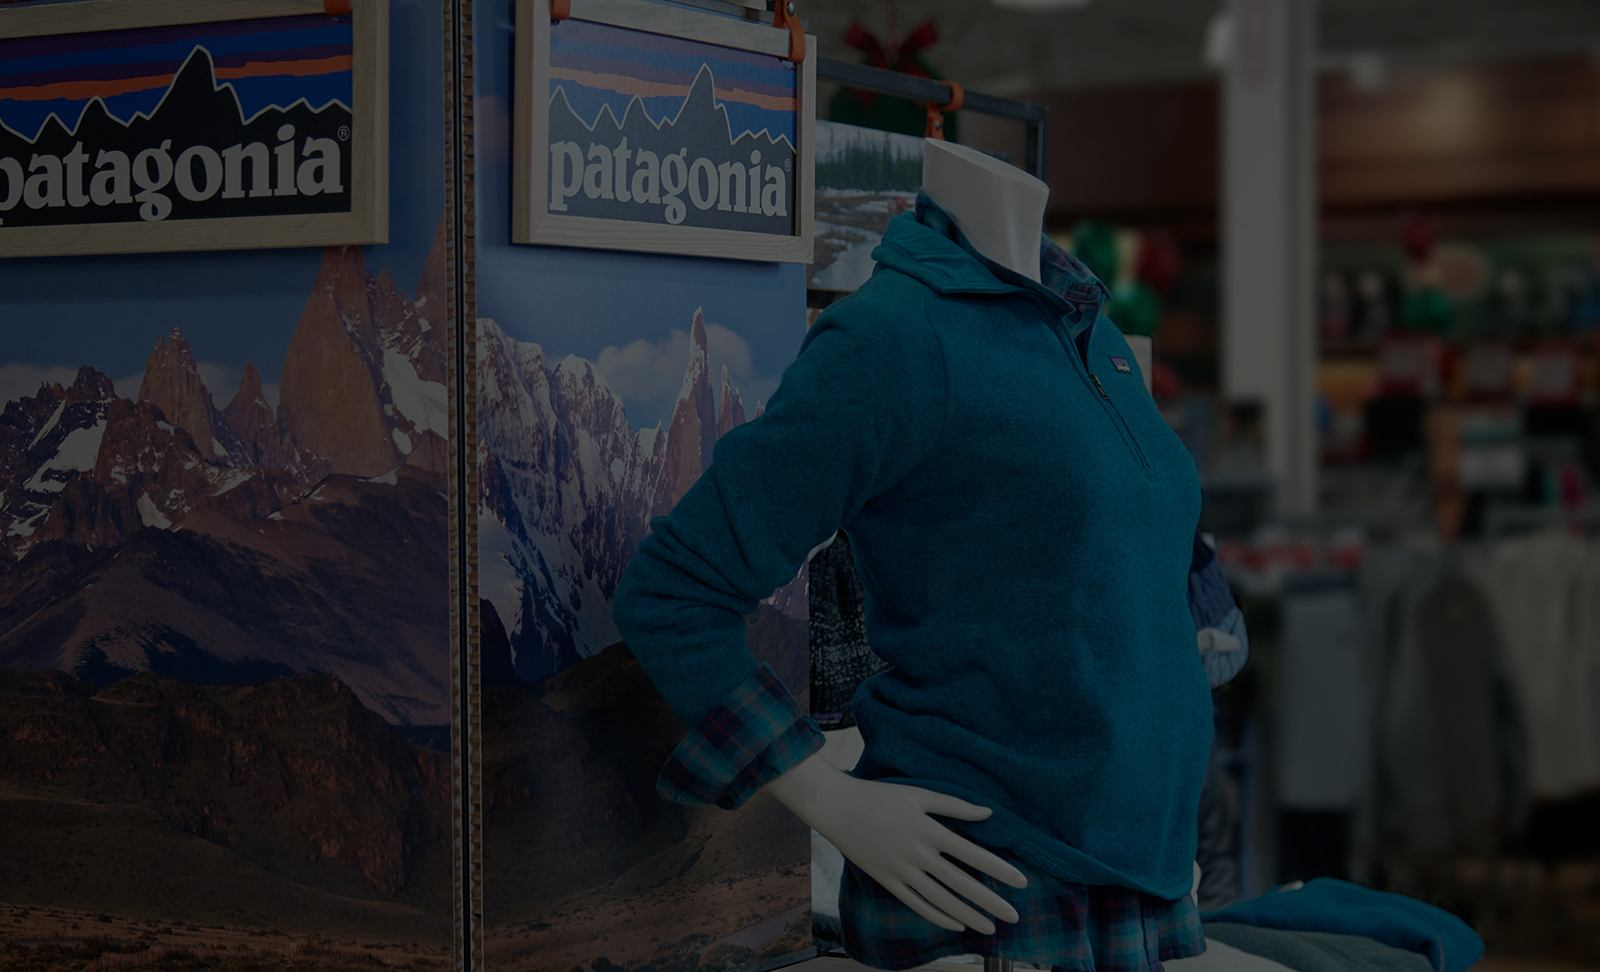 The Bernard Group partnered closely with Patagonia to integrate a customized, eco-friendly brand experience within a department store while optimizing space for expanding product and elevating the merchandising aesthetic.